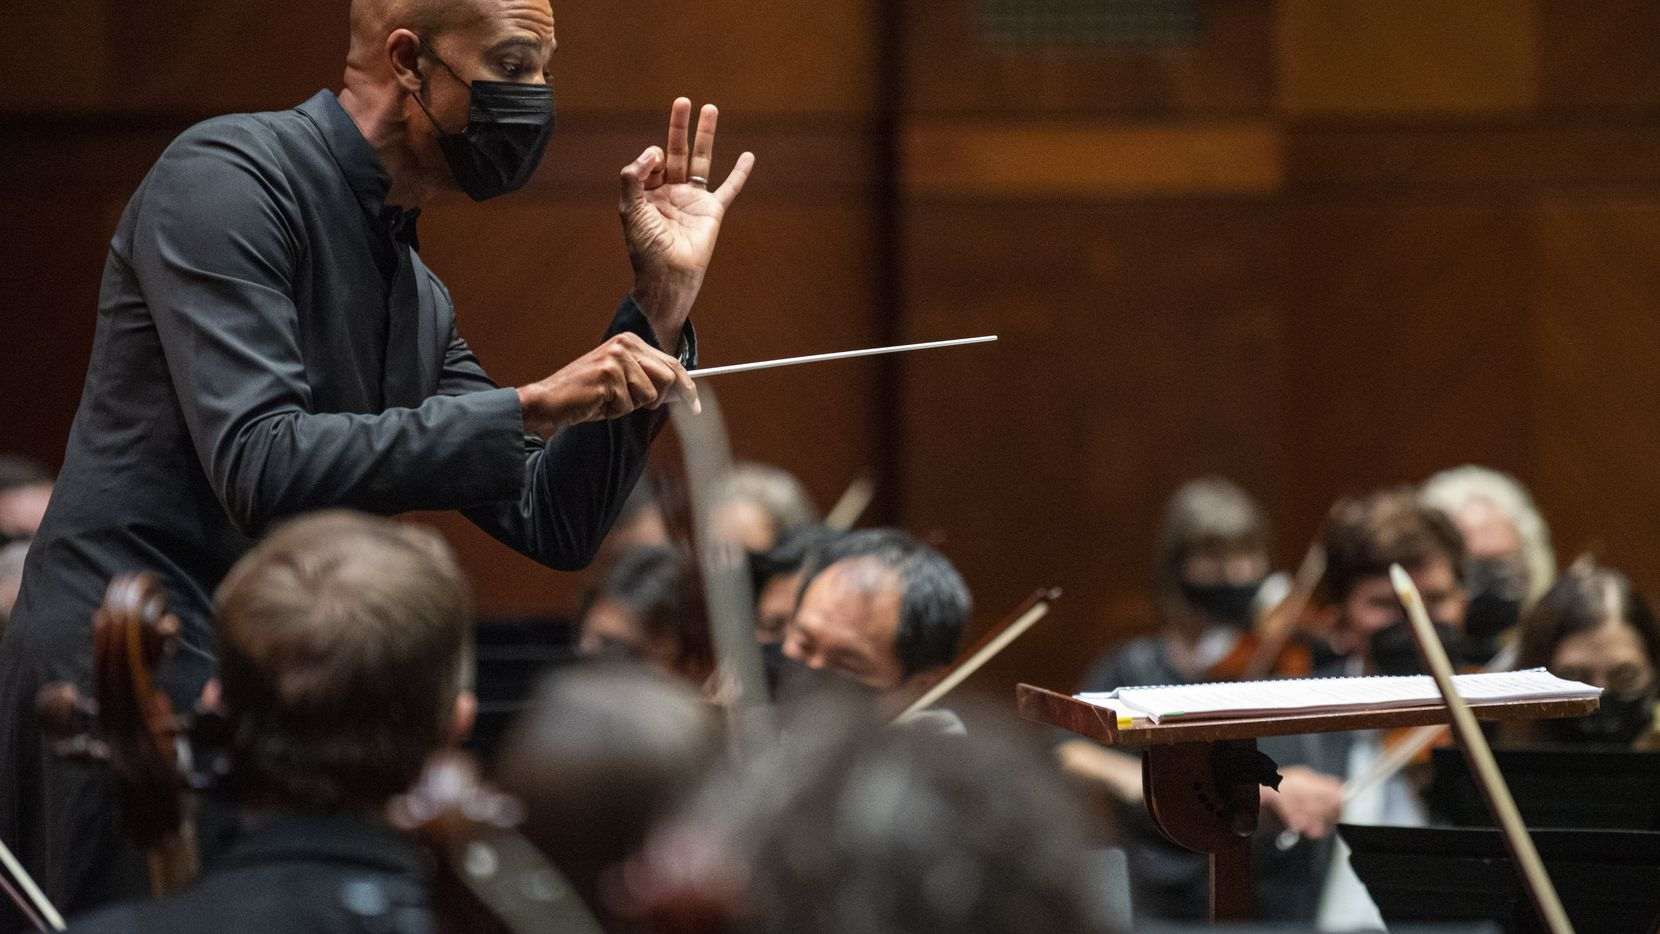 Kevin John Edusei conducts the Fort Worth Symphony Orchestra in a performance of 'Pulse' by Brian Raphael Nabors on Sept. 17 at Bass Performance Hall in downtown Fort Worth.